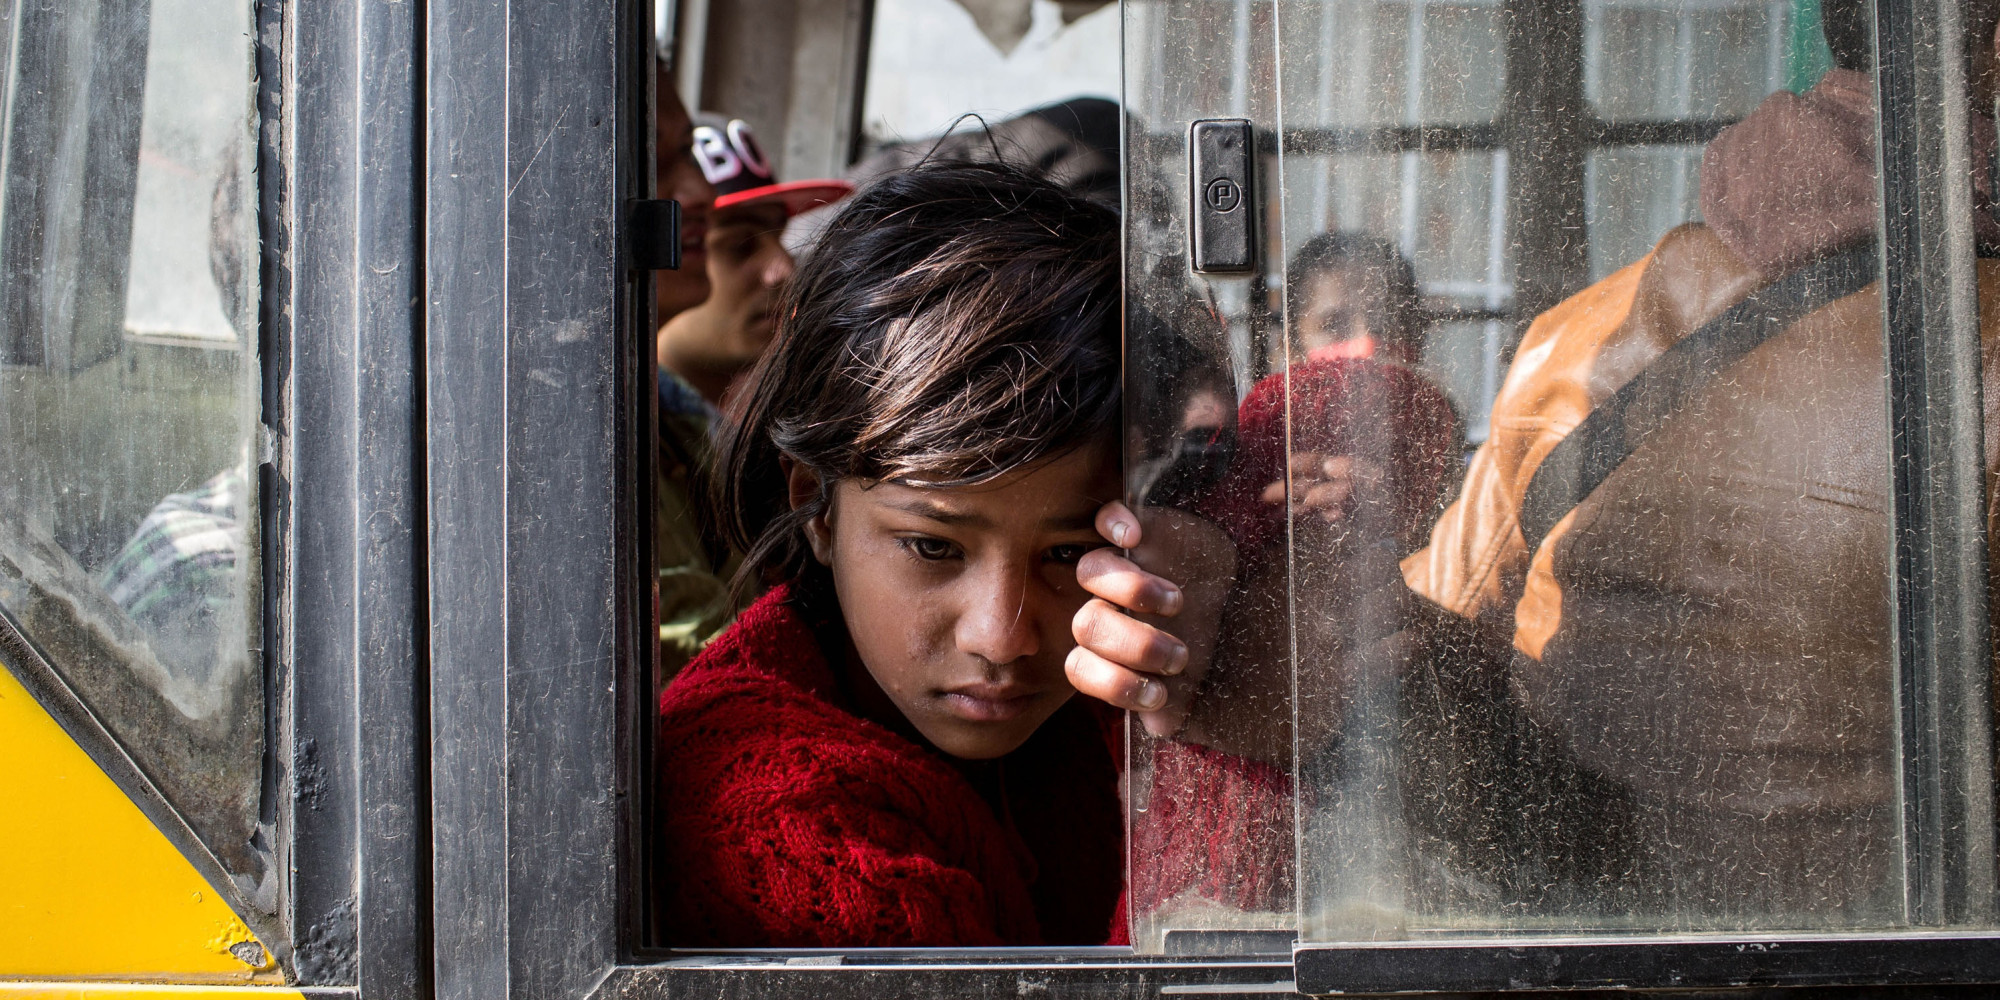 At least 950,000 children in Nepal are in makeshift tents, on the streets or simply out of school and will not be able to return for months unless urgent action is taken. With all classrooms closed until May 29, in a country which in recent years has lost 200,000 girls to cross-border trafficking an…